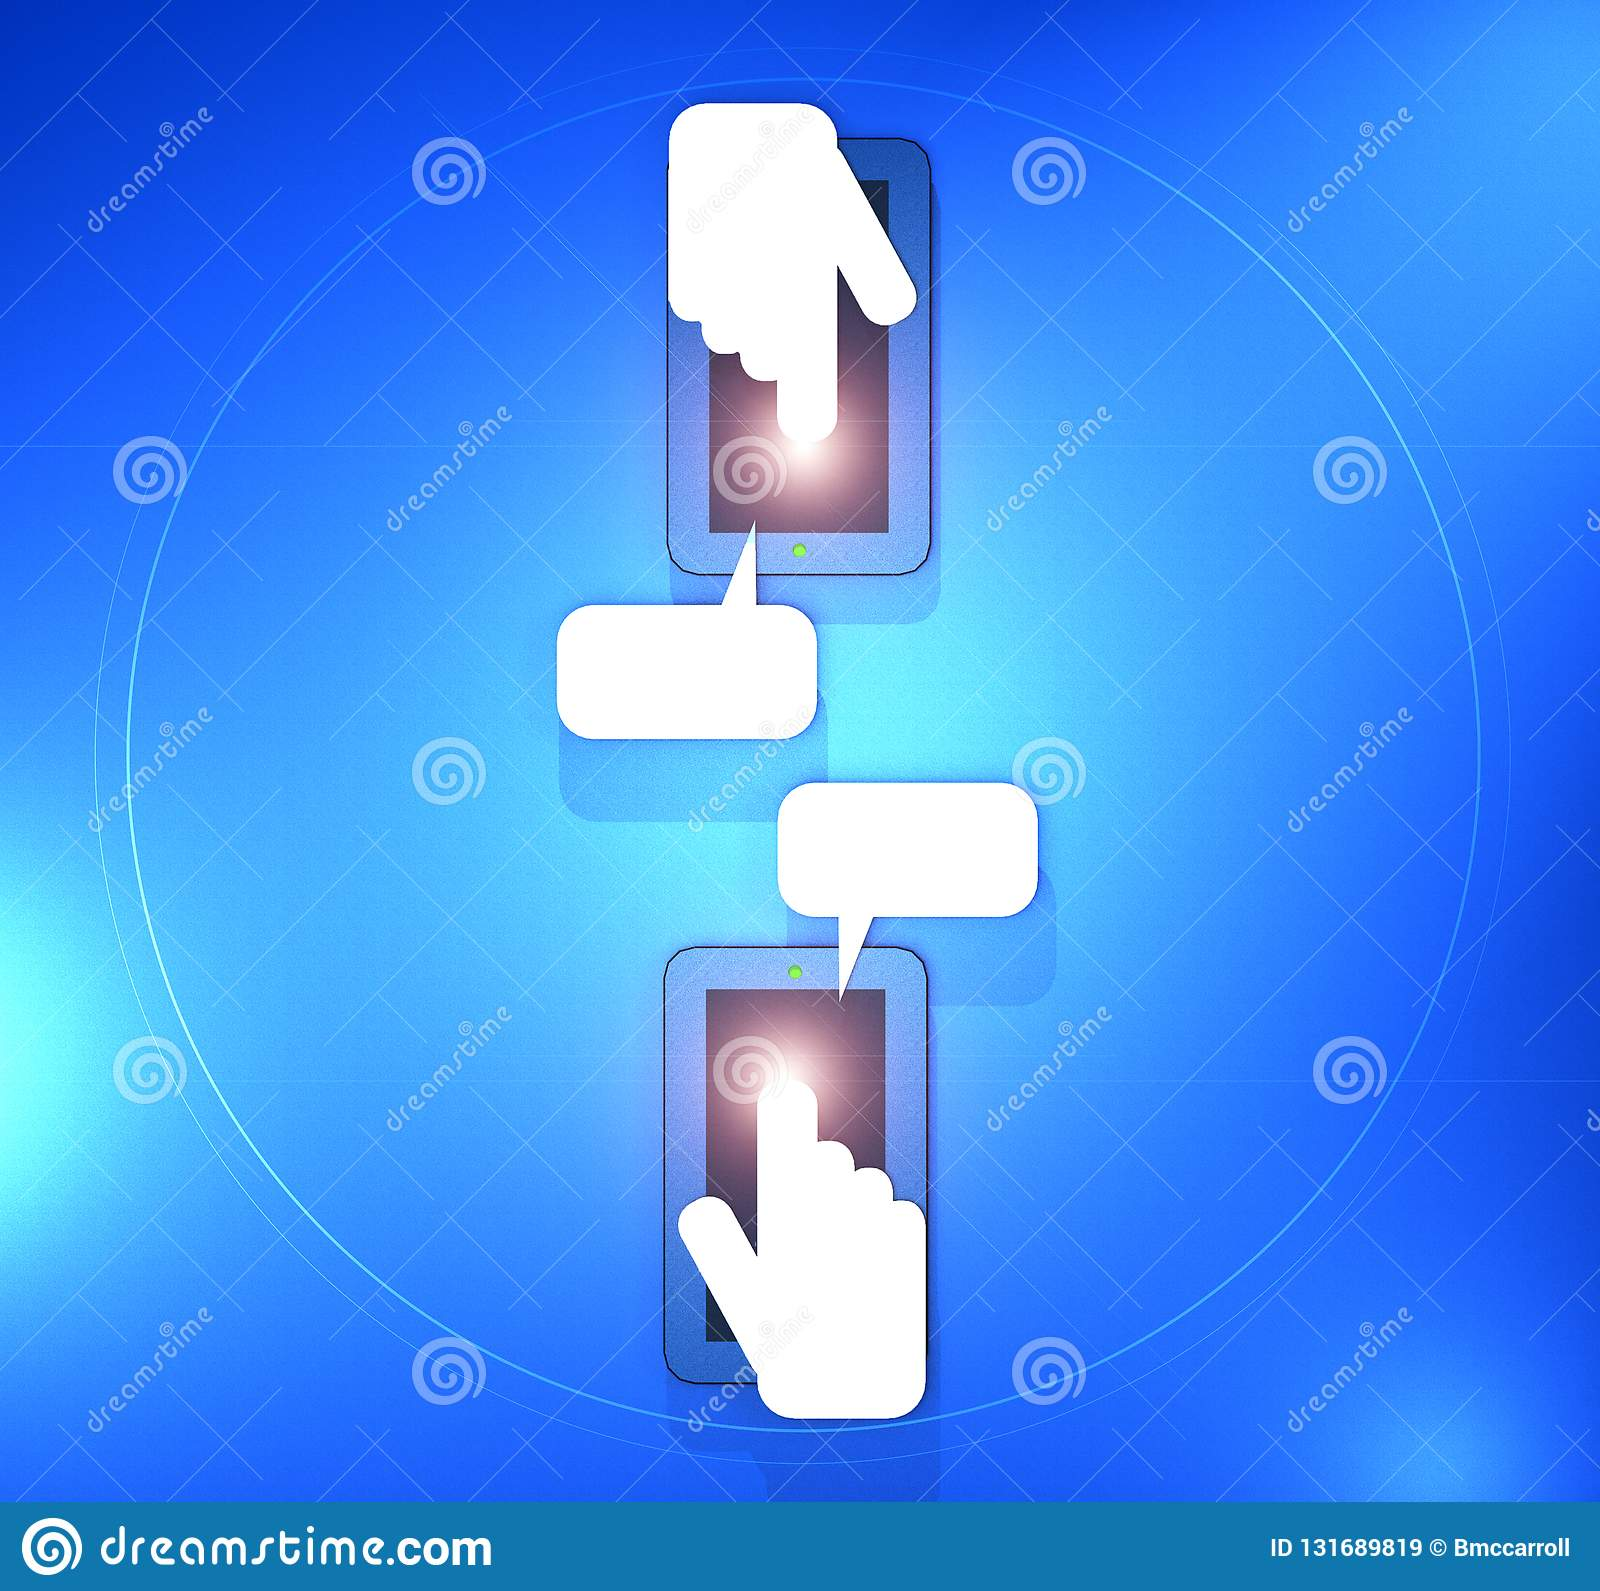 A 3D Illustration of two mobile phones with hands and fingers texting